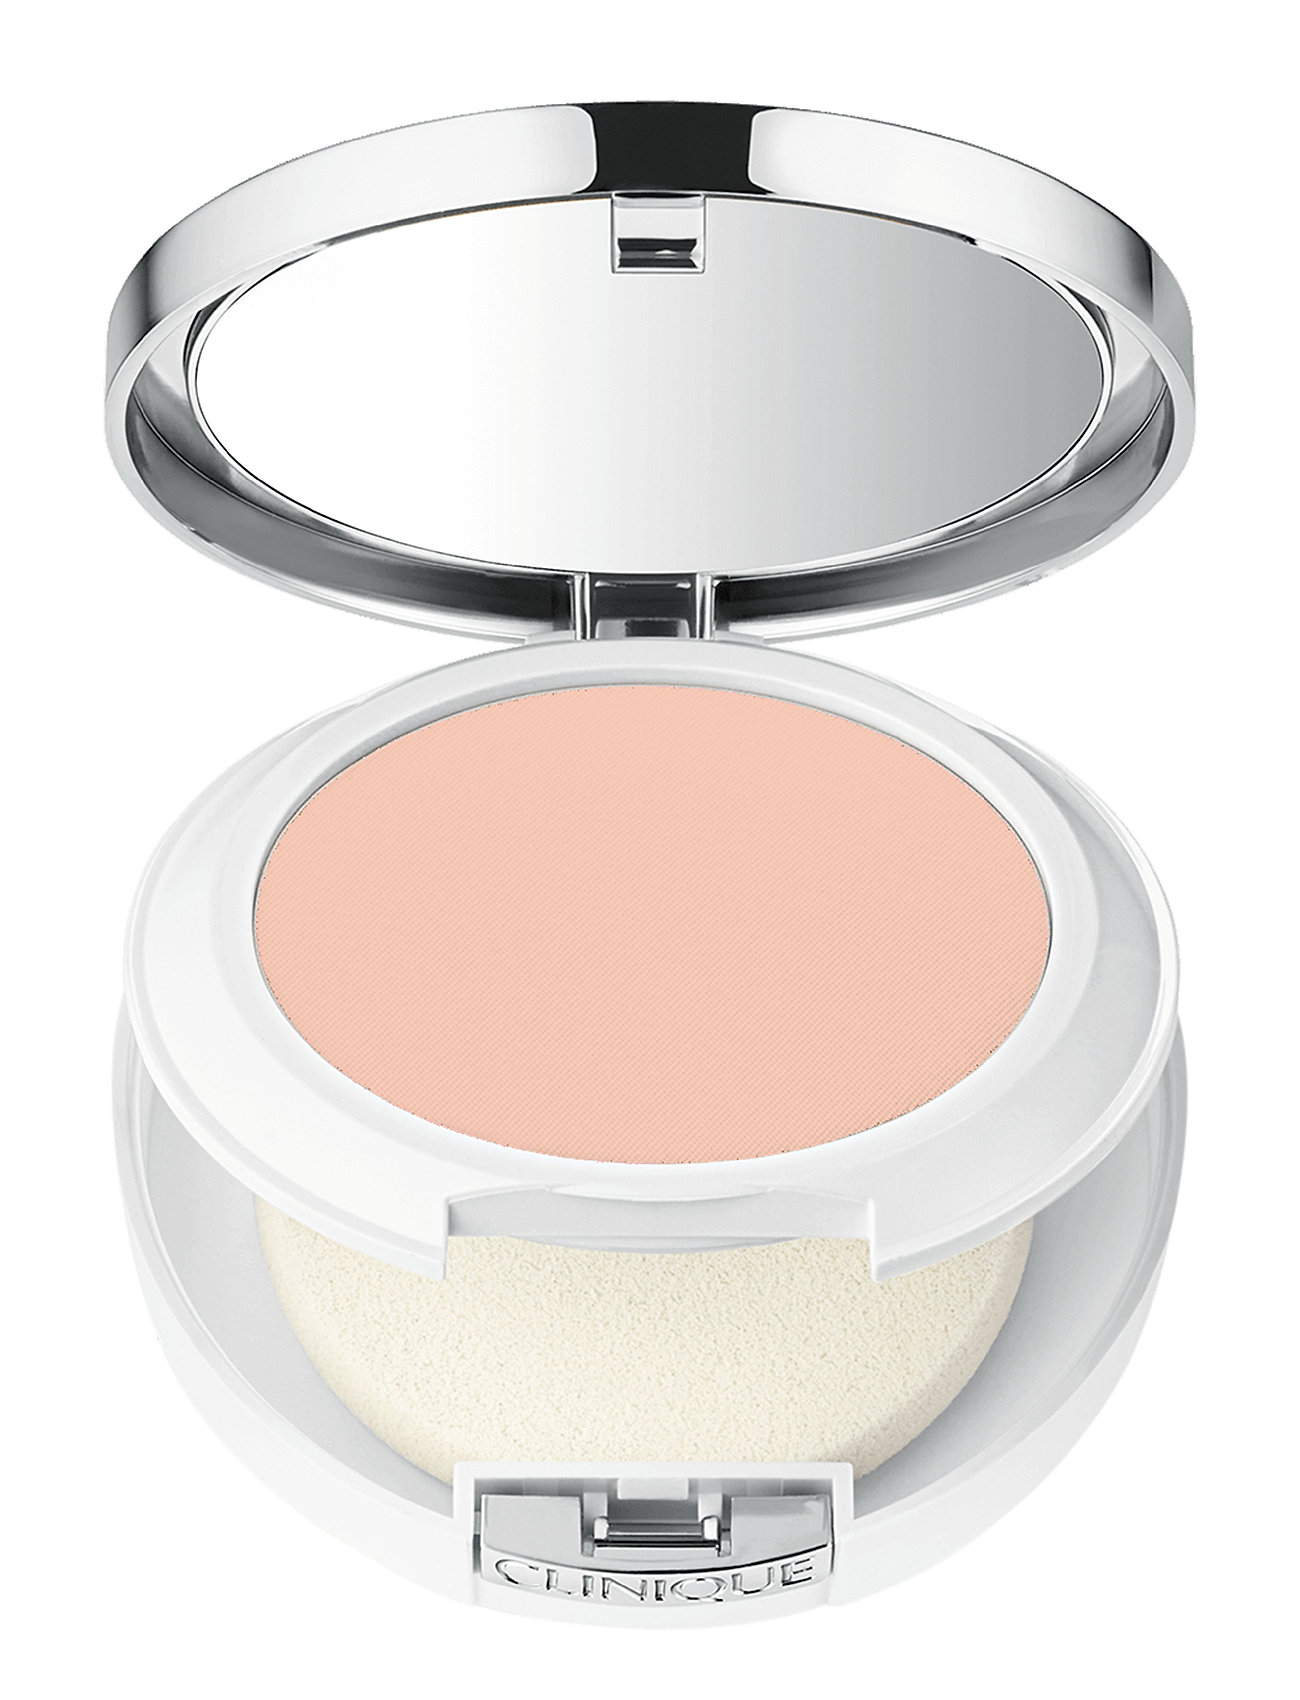 Image of Beyond Perfecting Powder Makeup + Concealer, Creamwhip Pudder Makeup Clinique (3041219629)